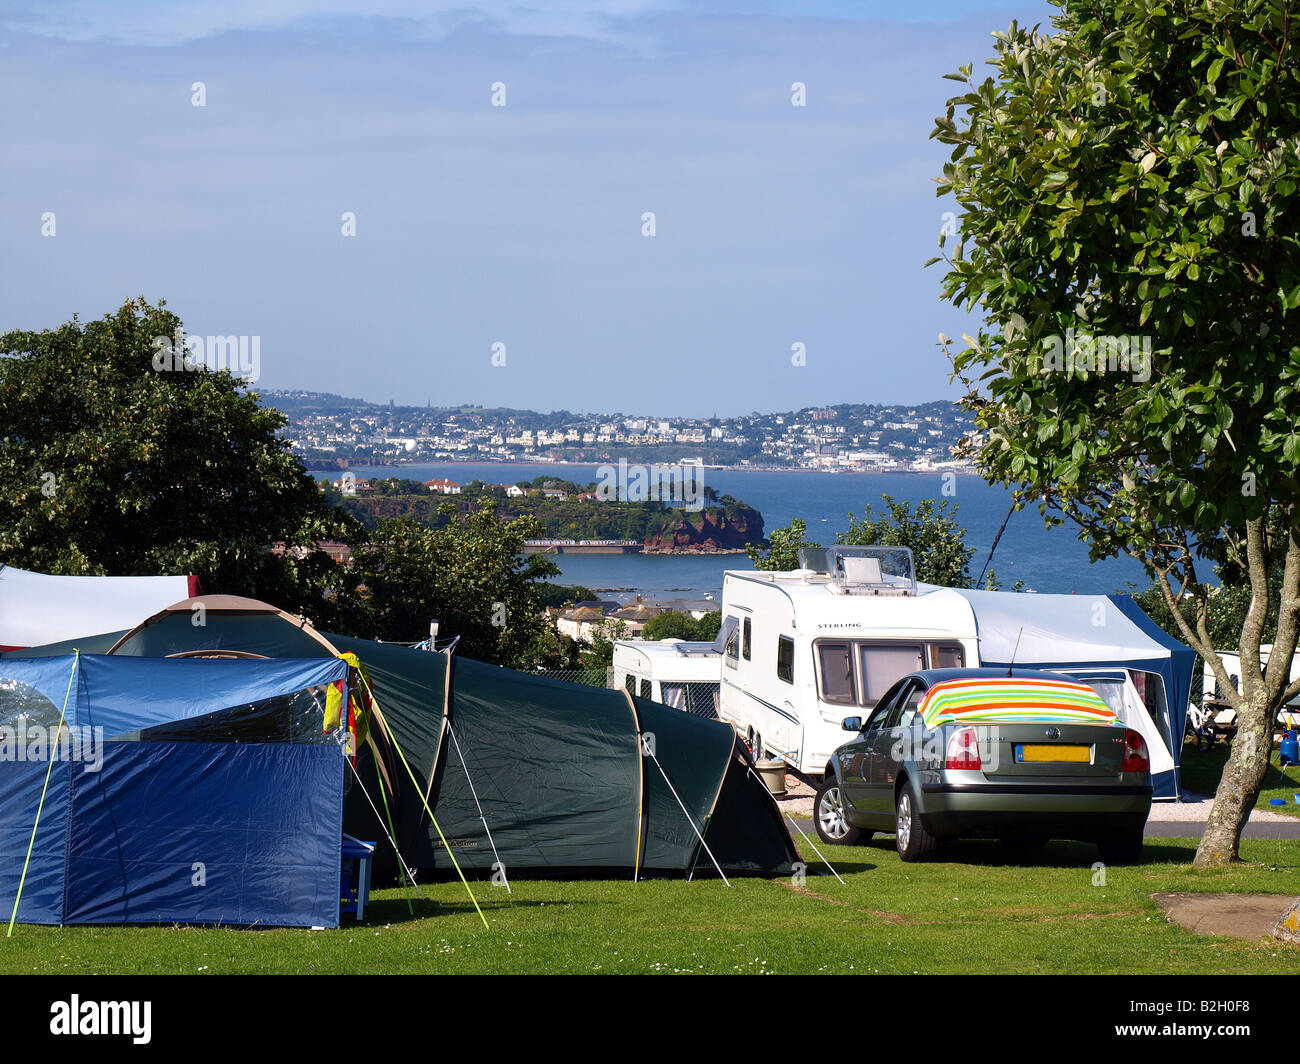 A view of Torbay from the Beverley park campsite at Goodrington,Paignton,The English Reviera,Devon,uk. - Stock Image